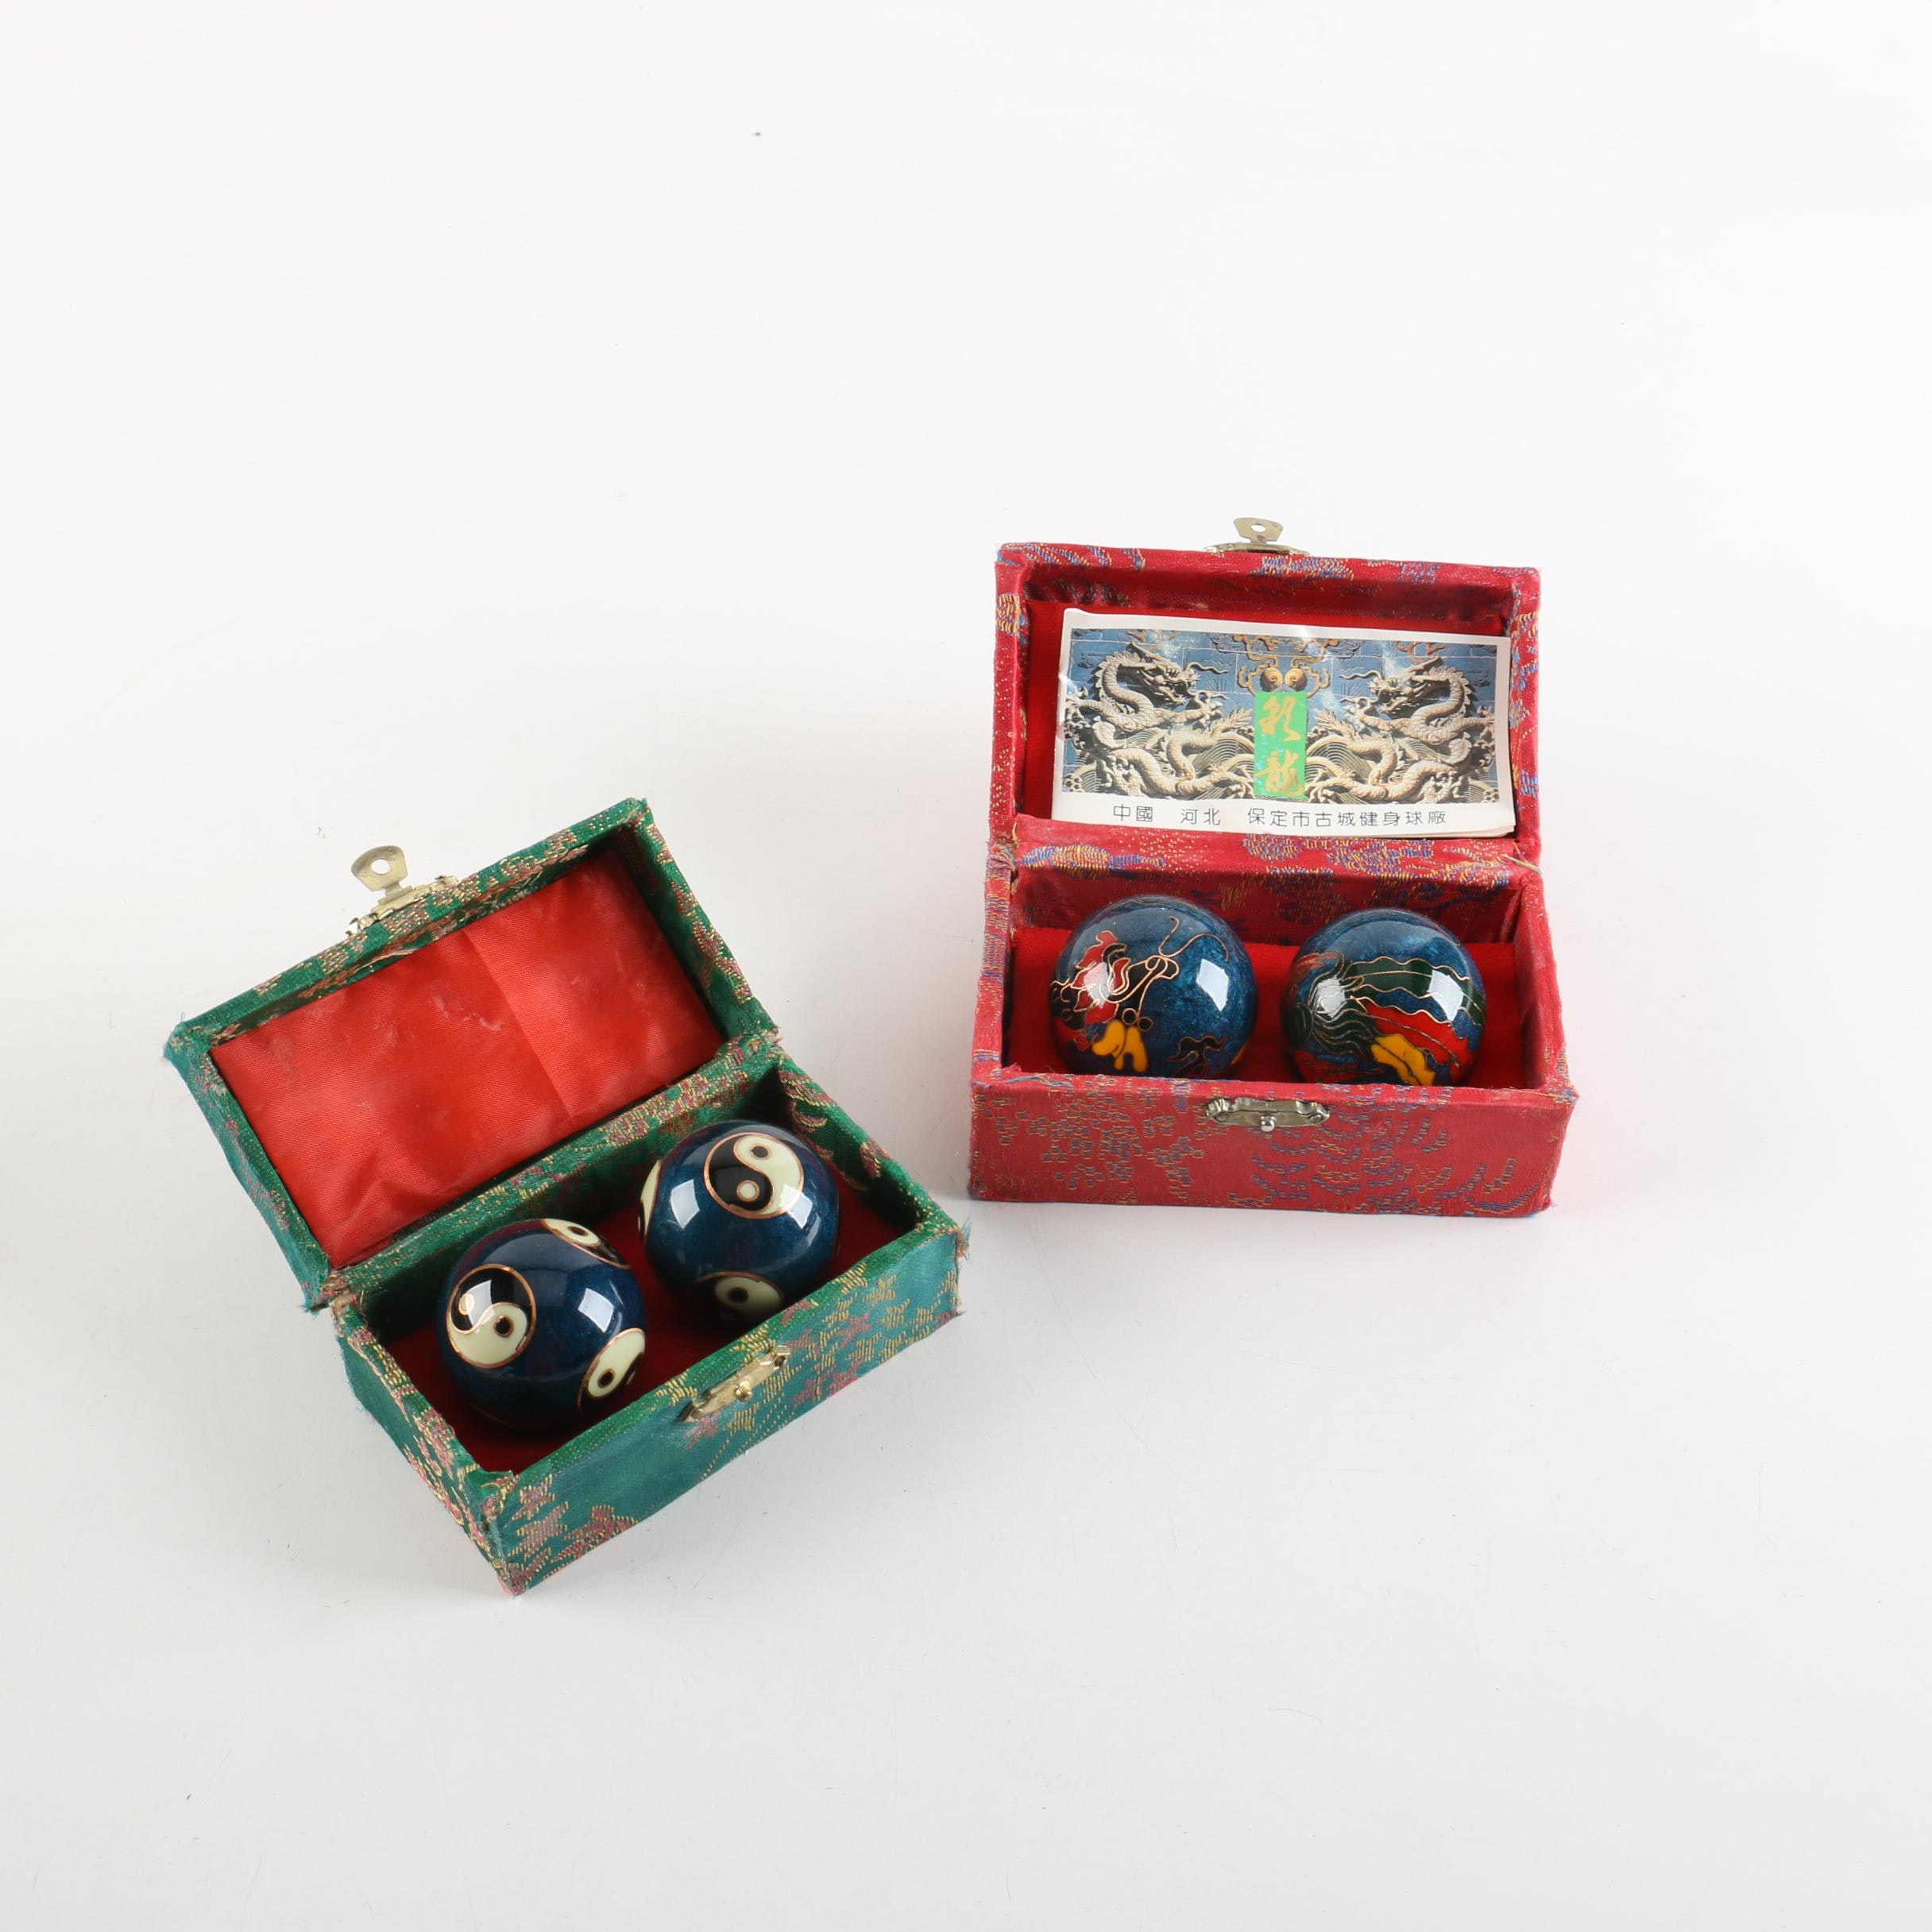 Two Pairs of Baoding Meditation Balls in Boxes